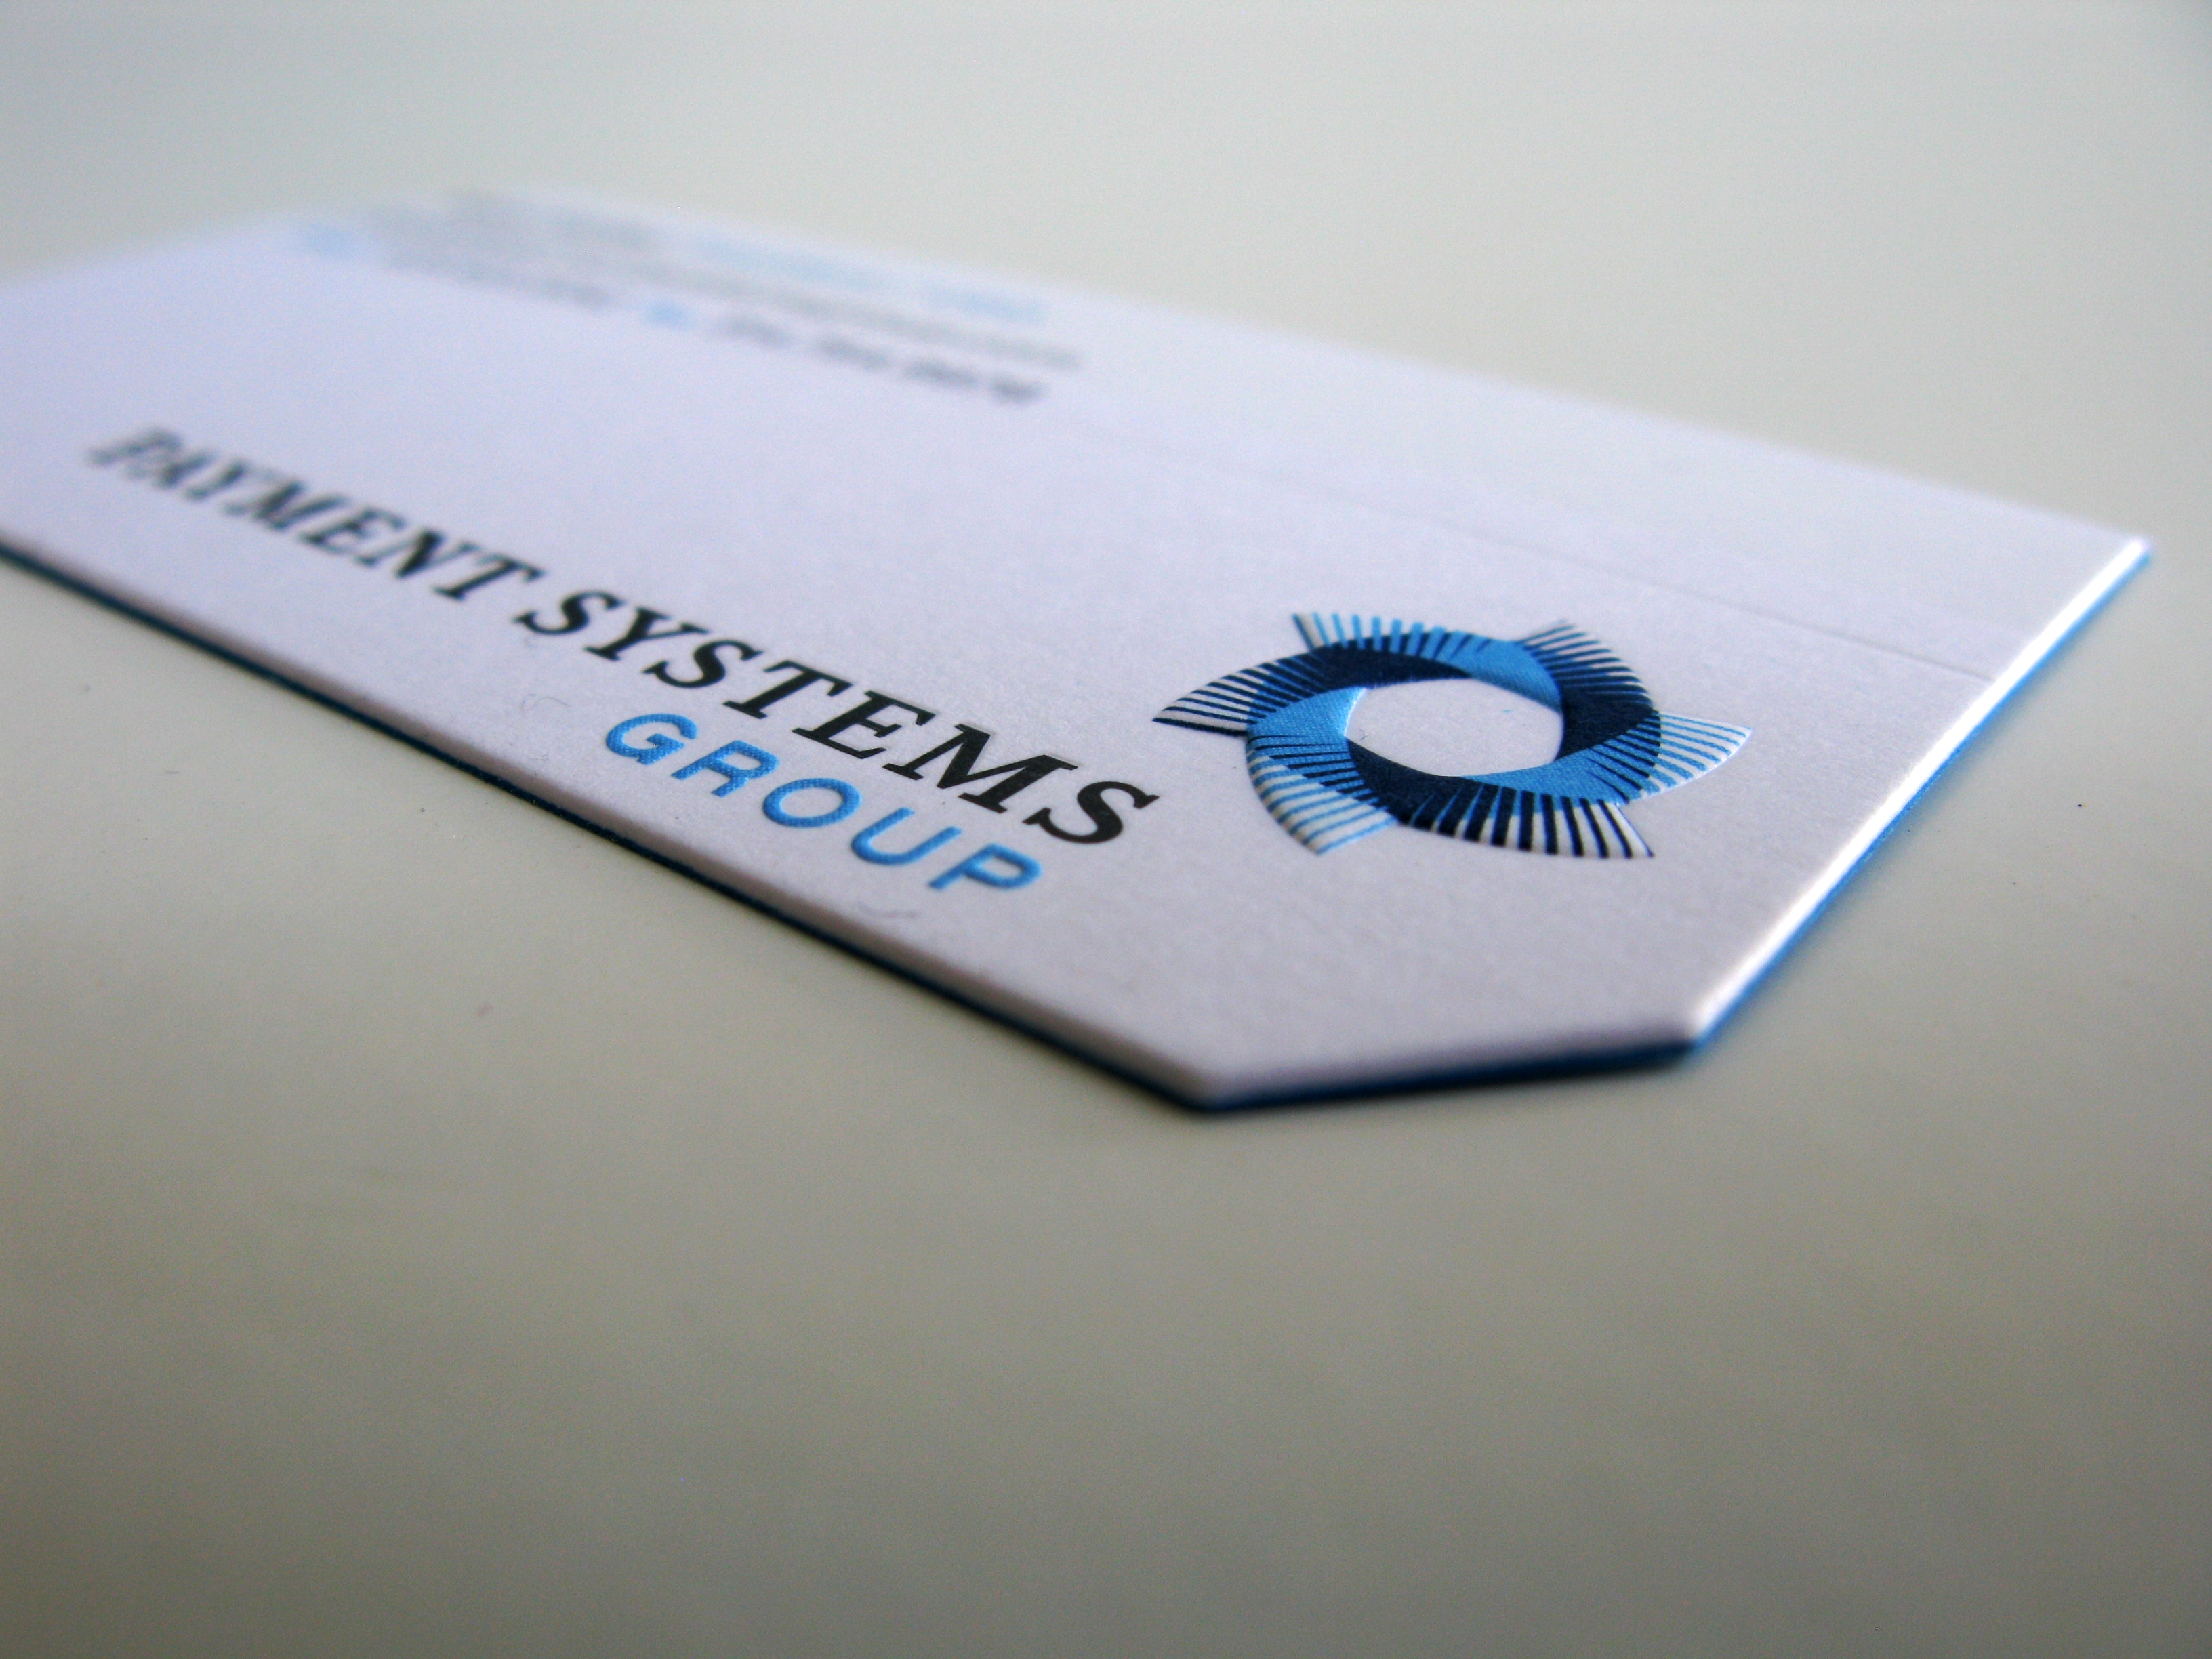 PSG Business Card